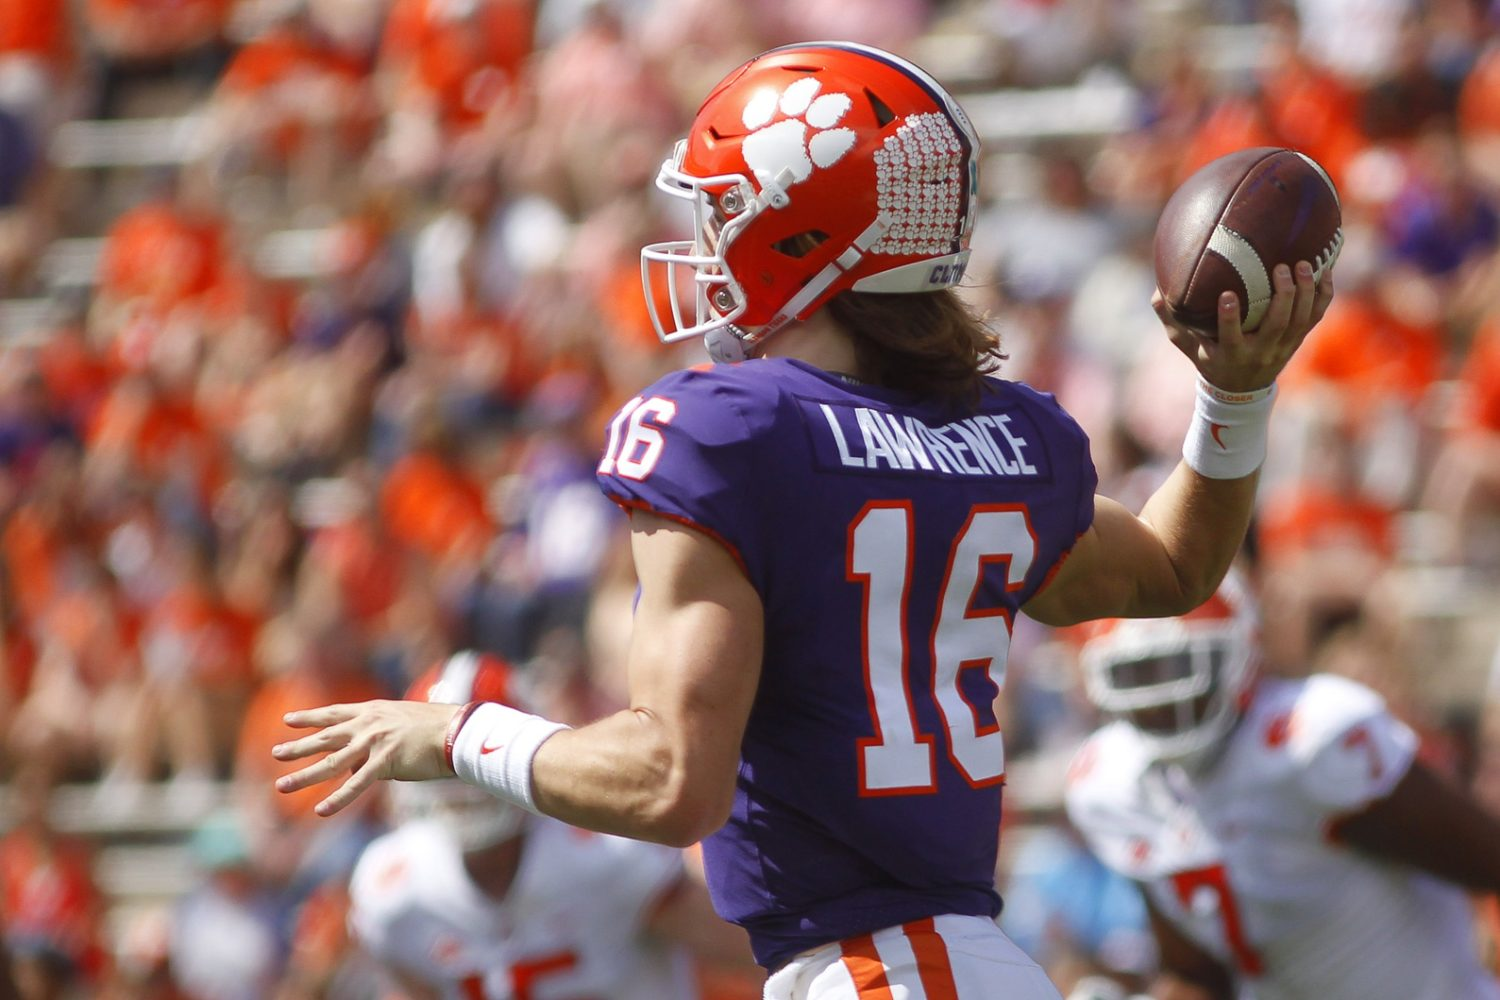 Clemson Vs Georgia Tech Football Tv Channel Game Time Updated Odds And Predictions August 29 2019